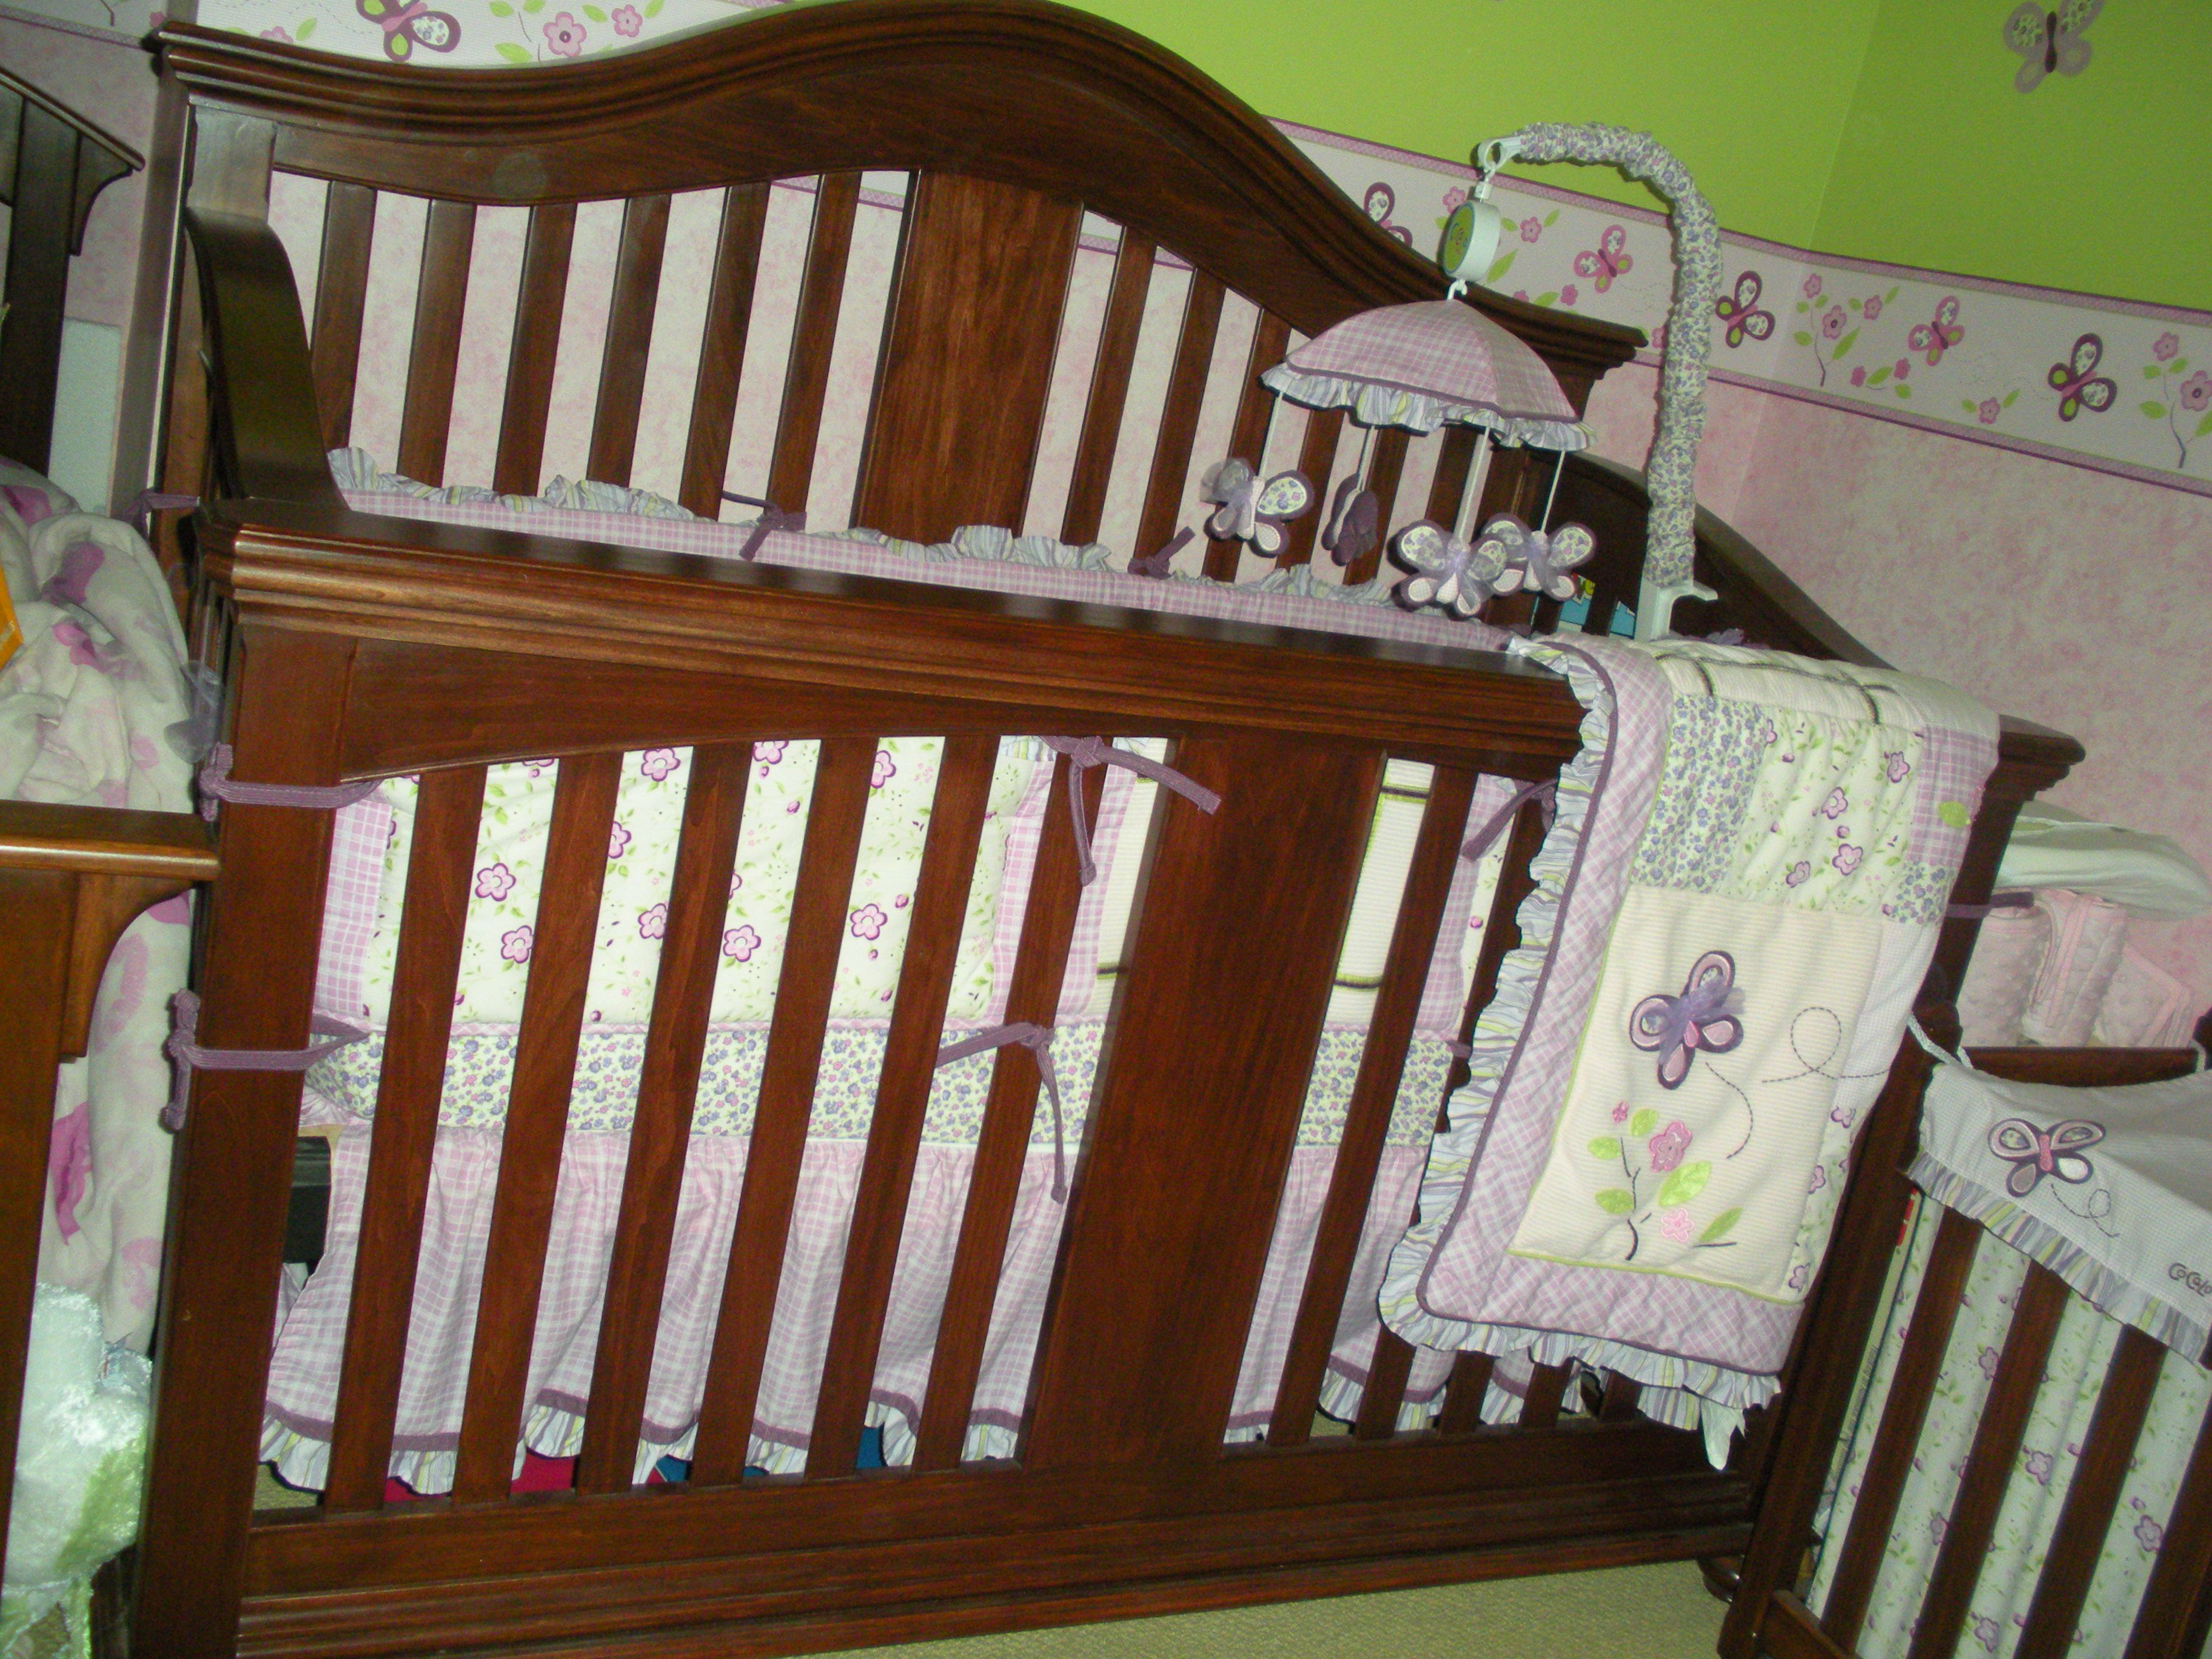 Handmade 4 in 1 baby crib. Look for the toddler bed conversion photo ...